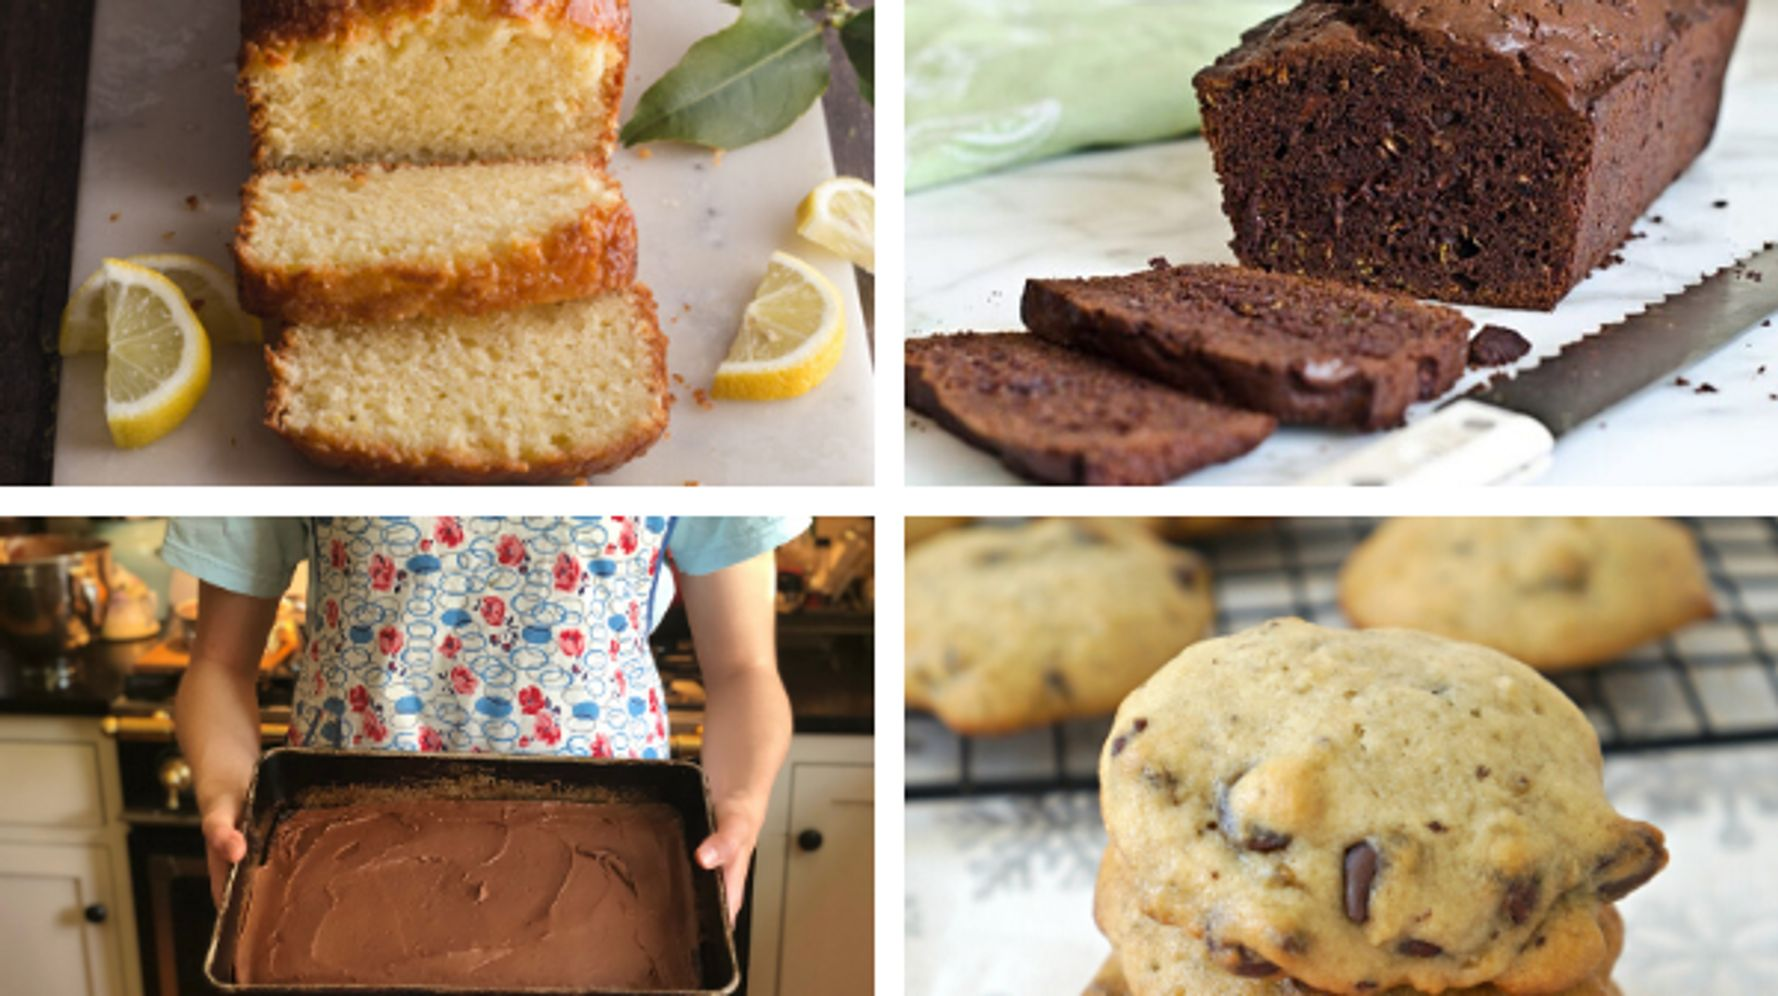 Recipes To Bake After Banana Bread: A Choose-Your-Own Adventure Guide